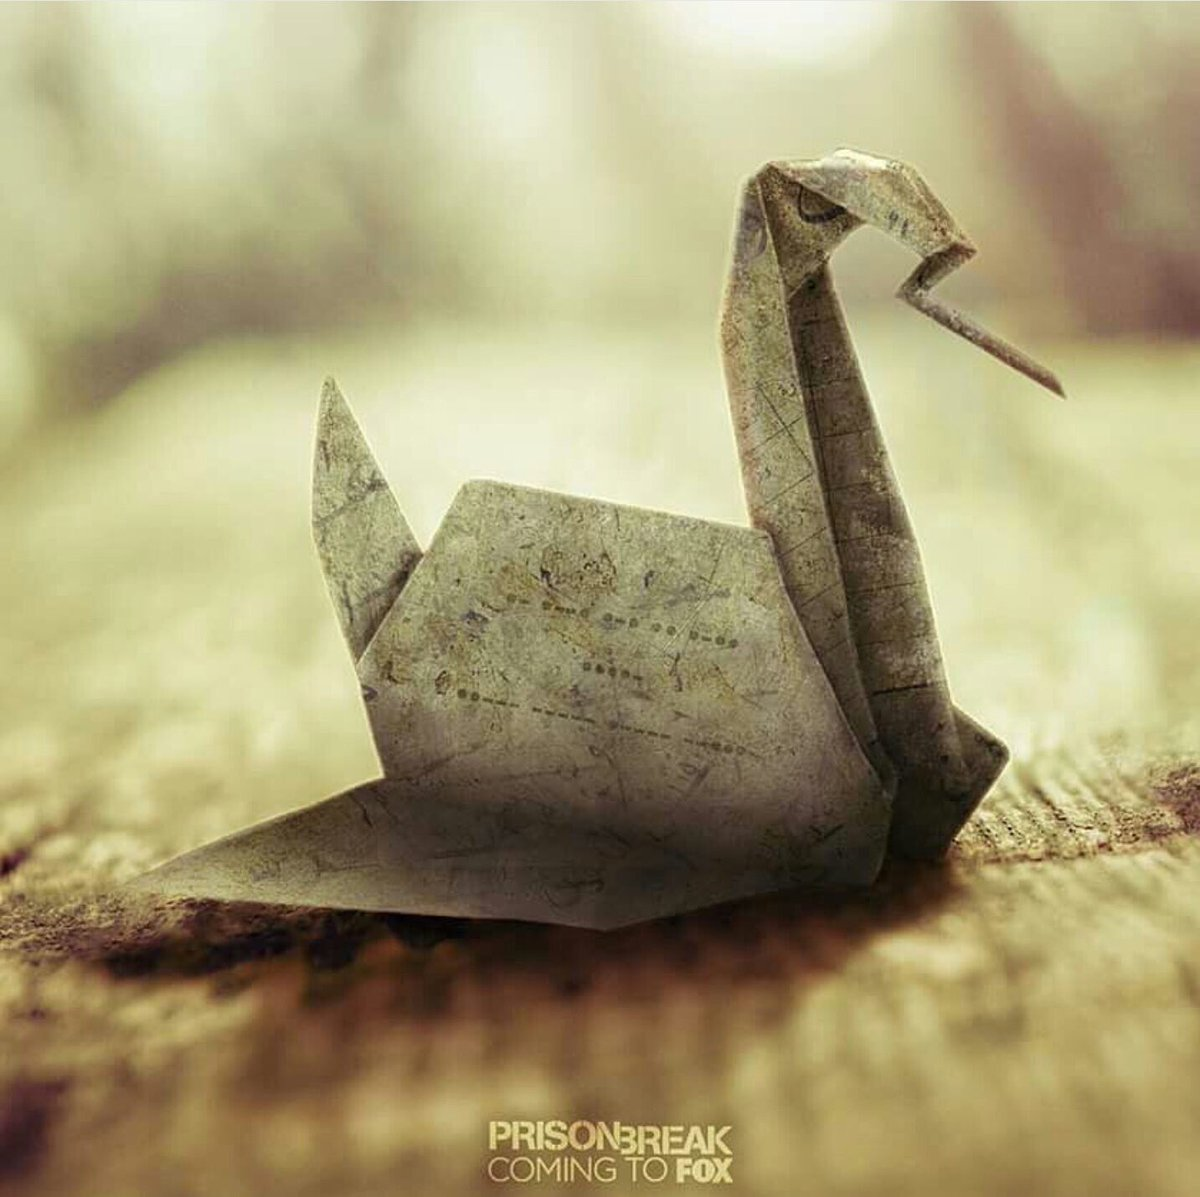 How To Make The Real Prison Break Origami Swan Origami Tutorial